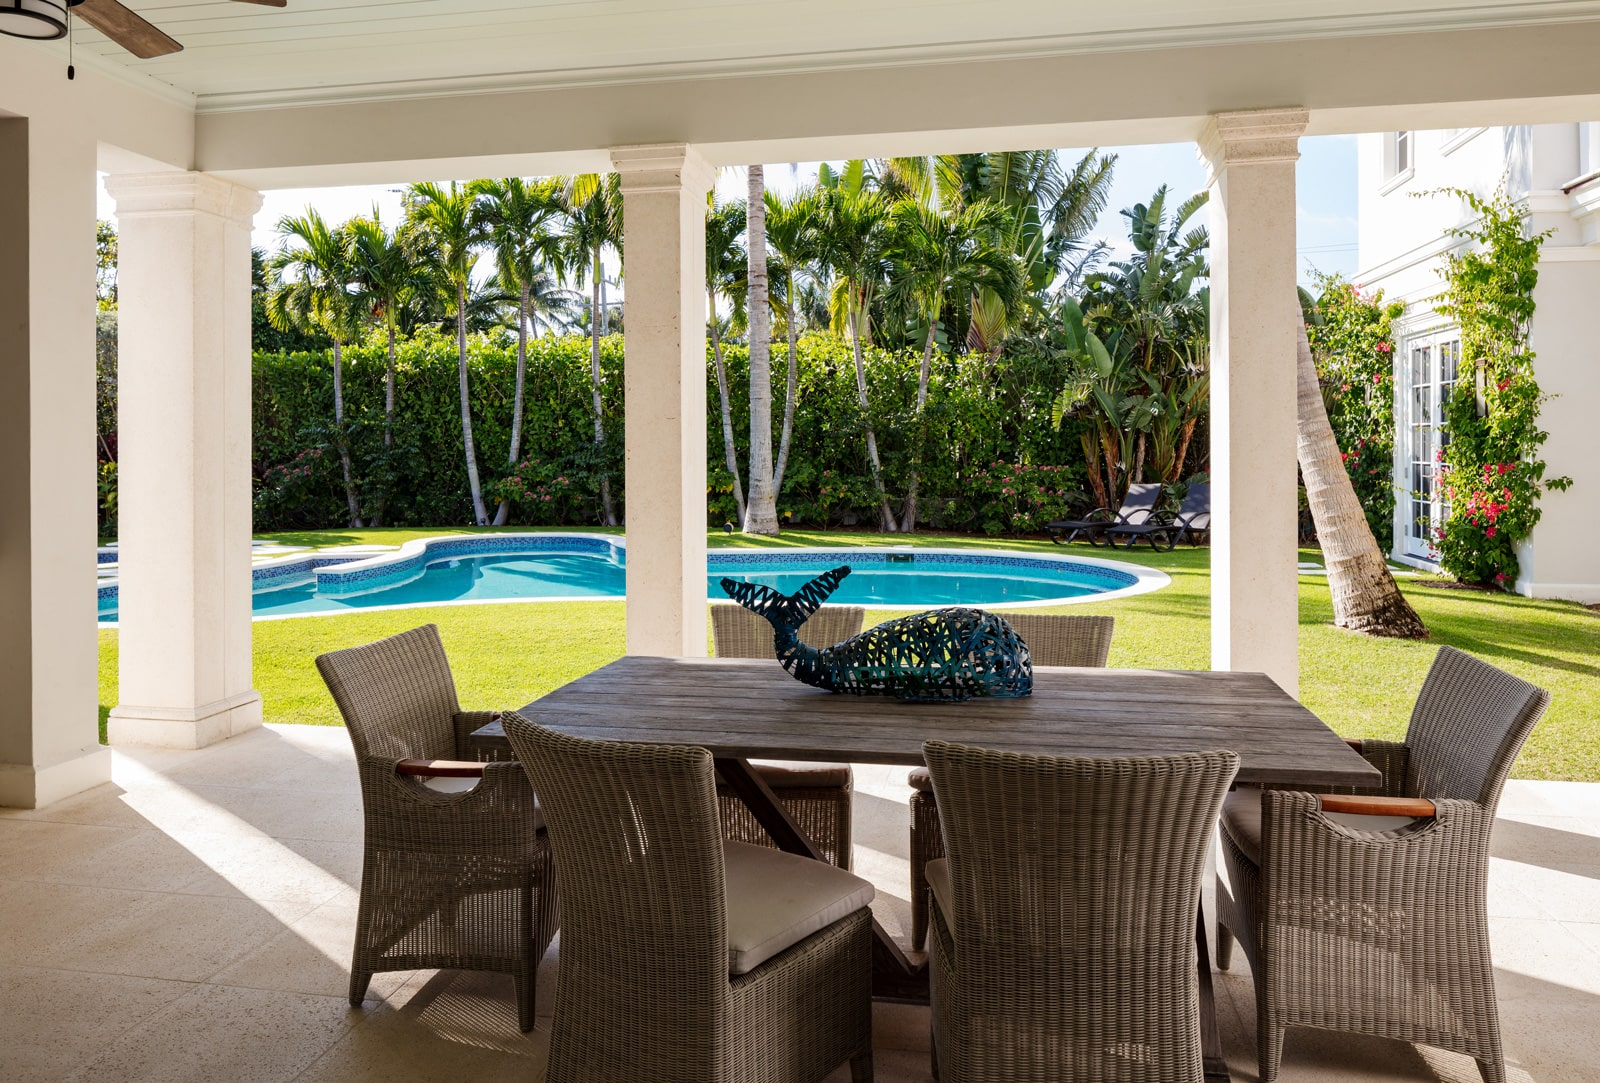 ecclestone-homes-palm-beach-patio-remodel-with-pool-pg09-min